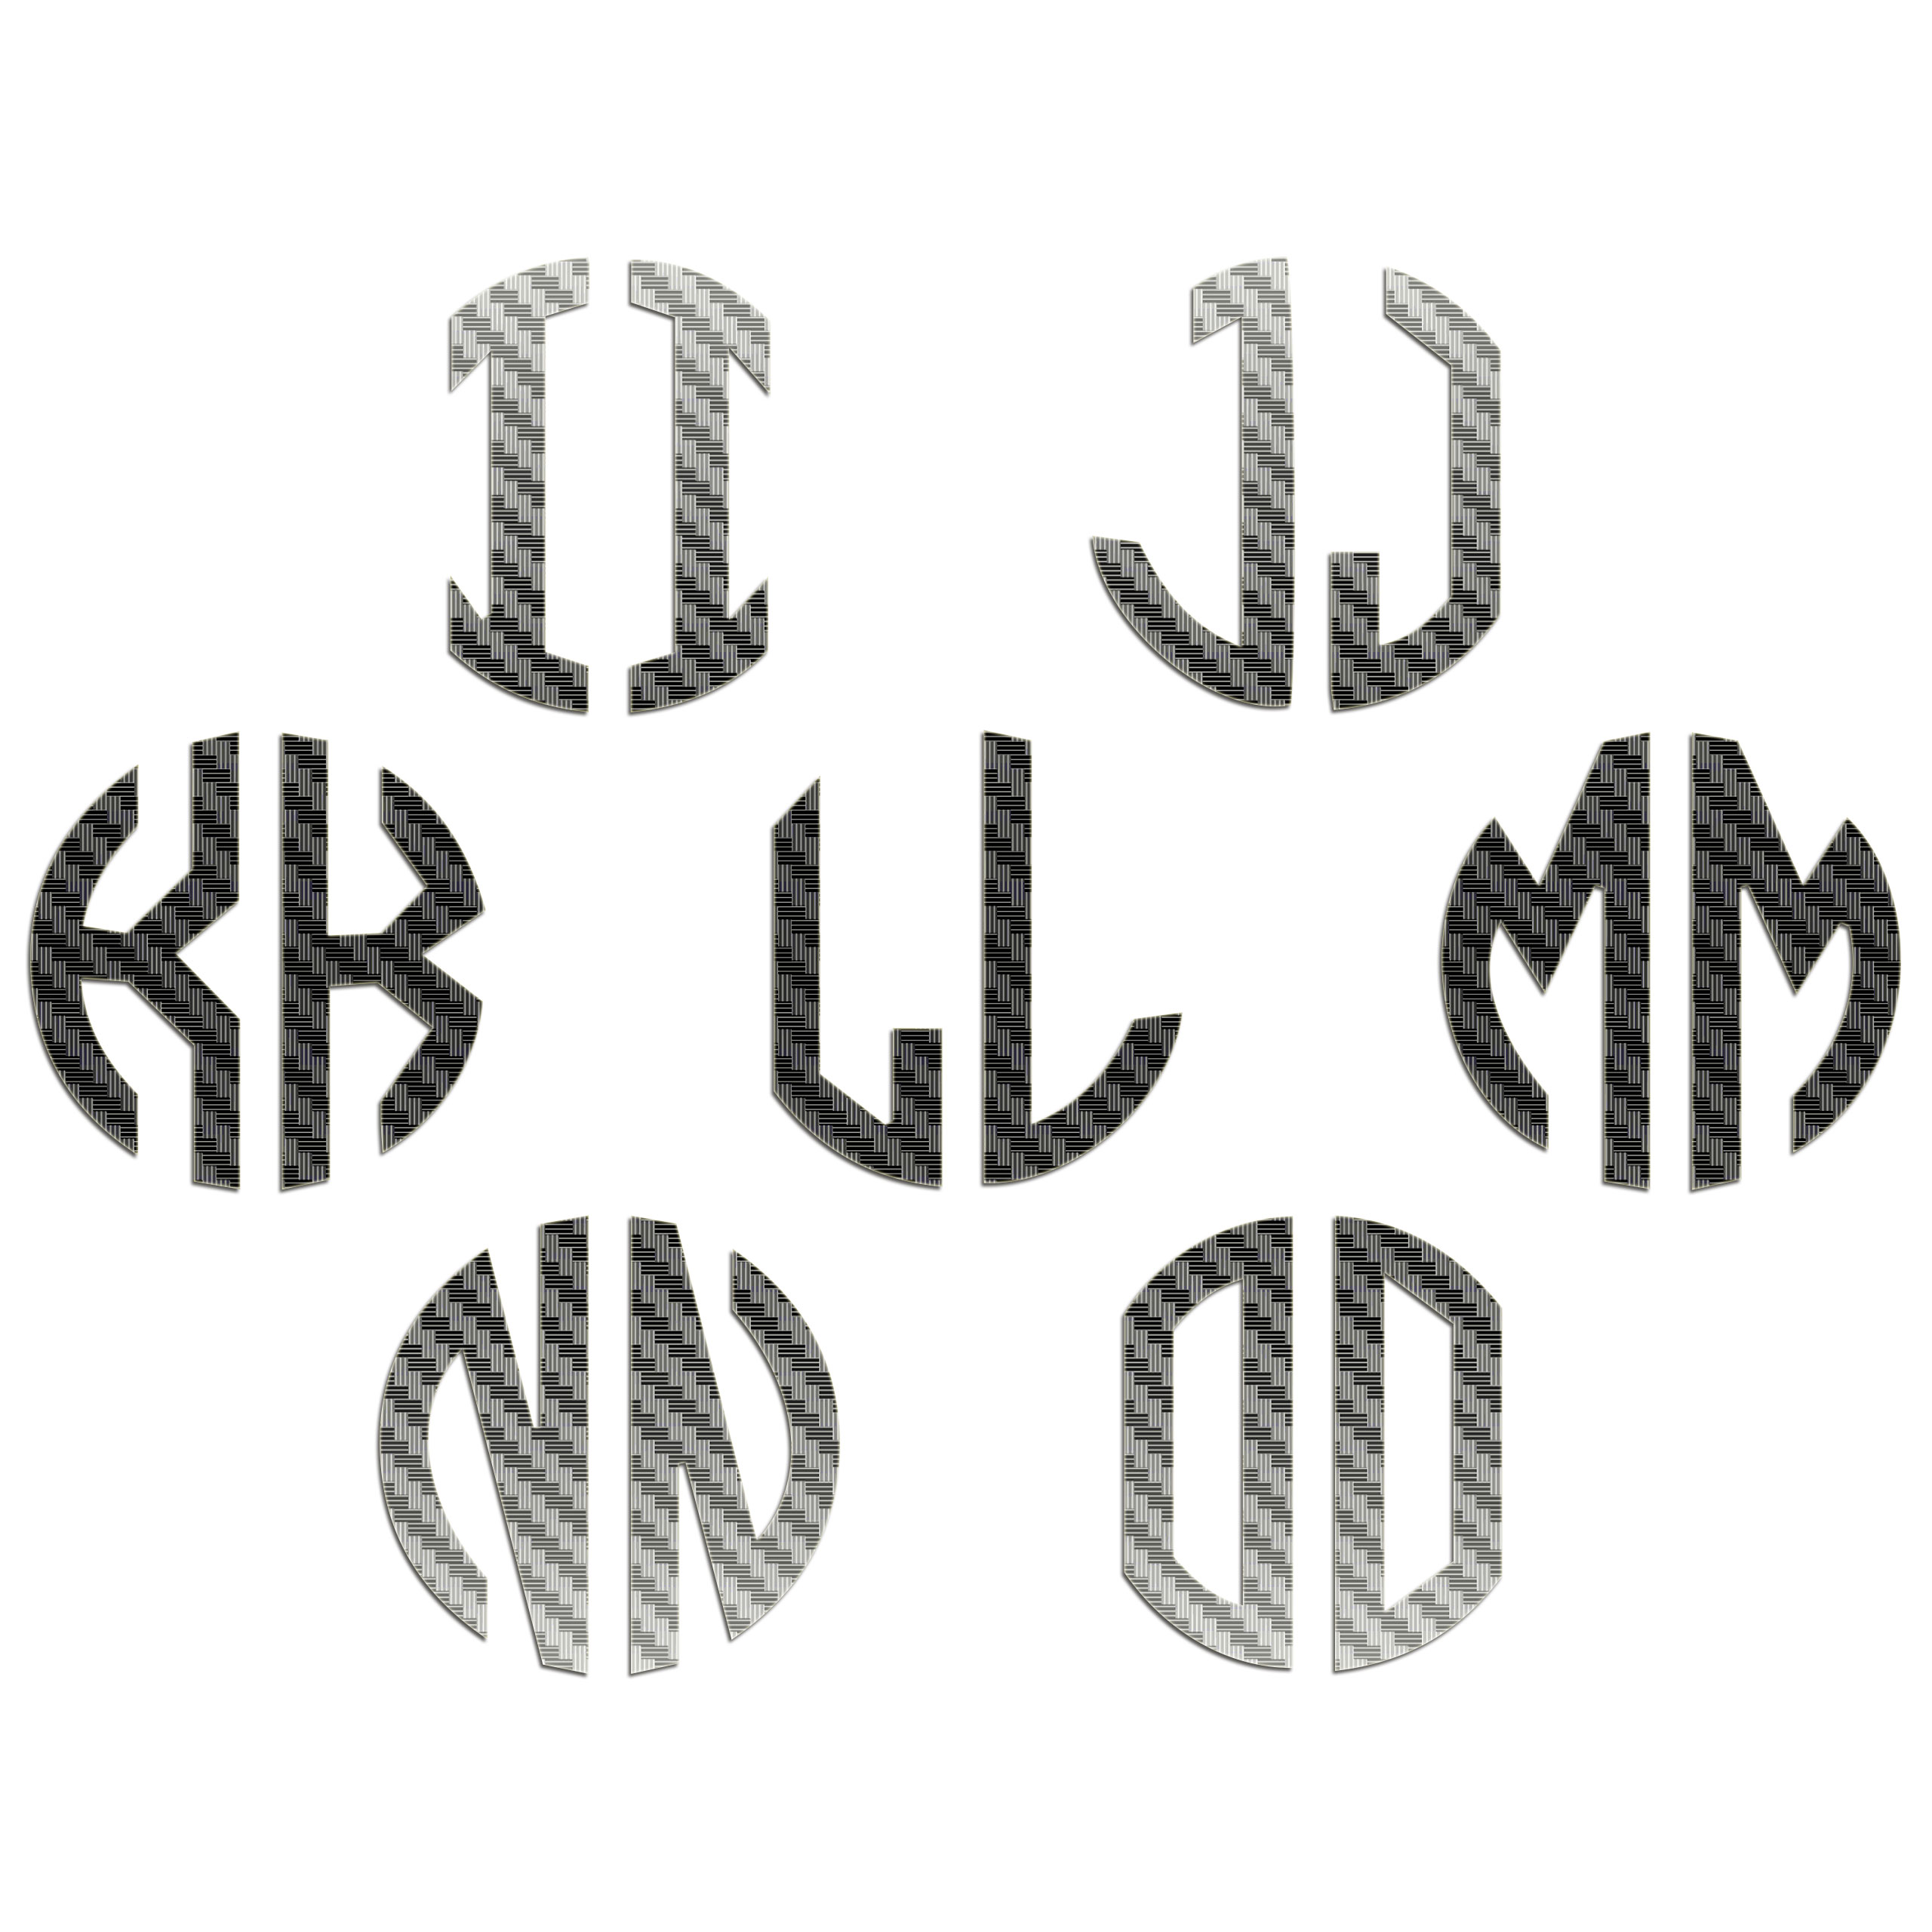 JasonCarlMorgan-JCM-Graphics-Personalised-Initials-Monogram-Sticker thumbnail 7